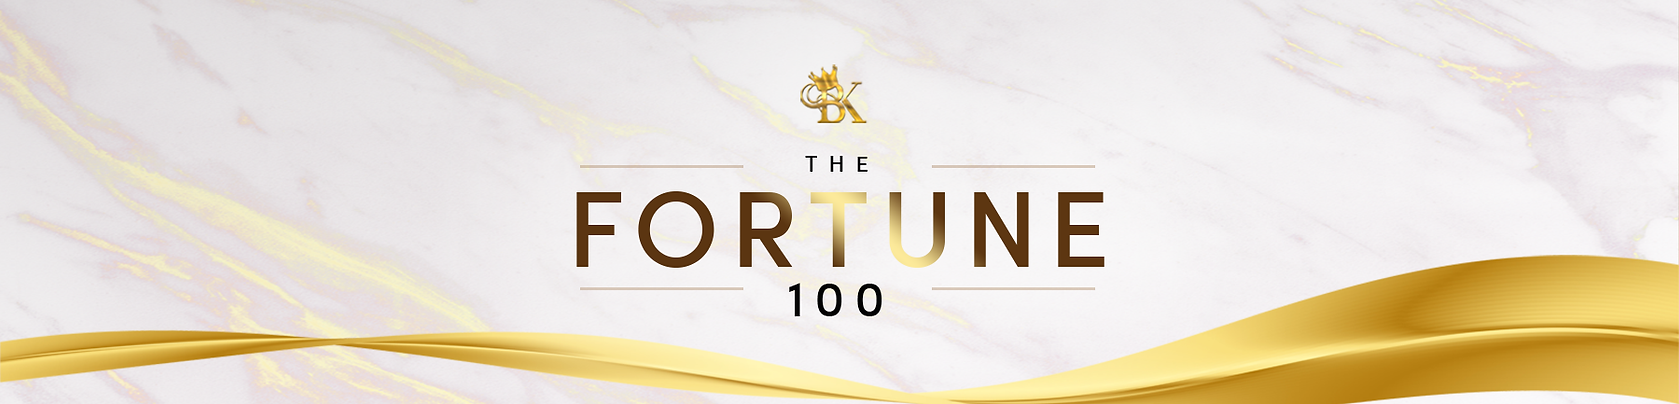 bkim fortune 100.png